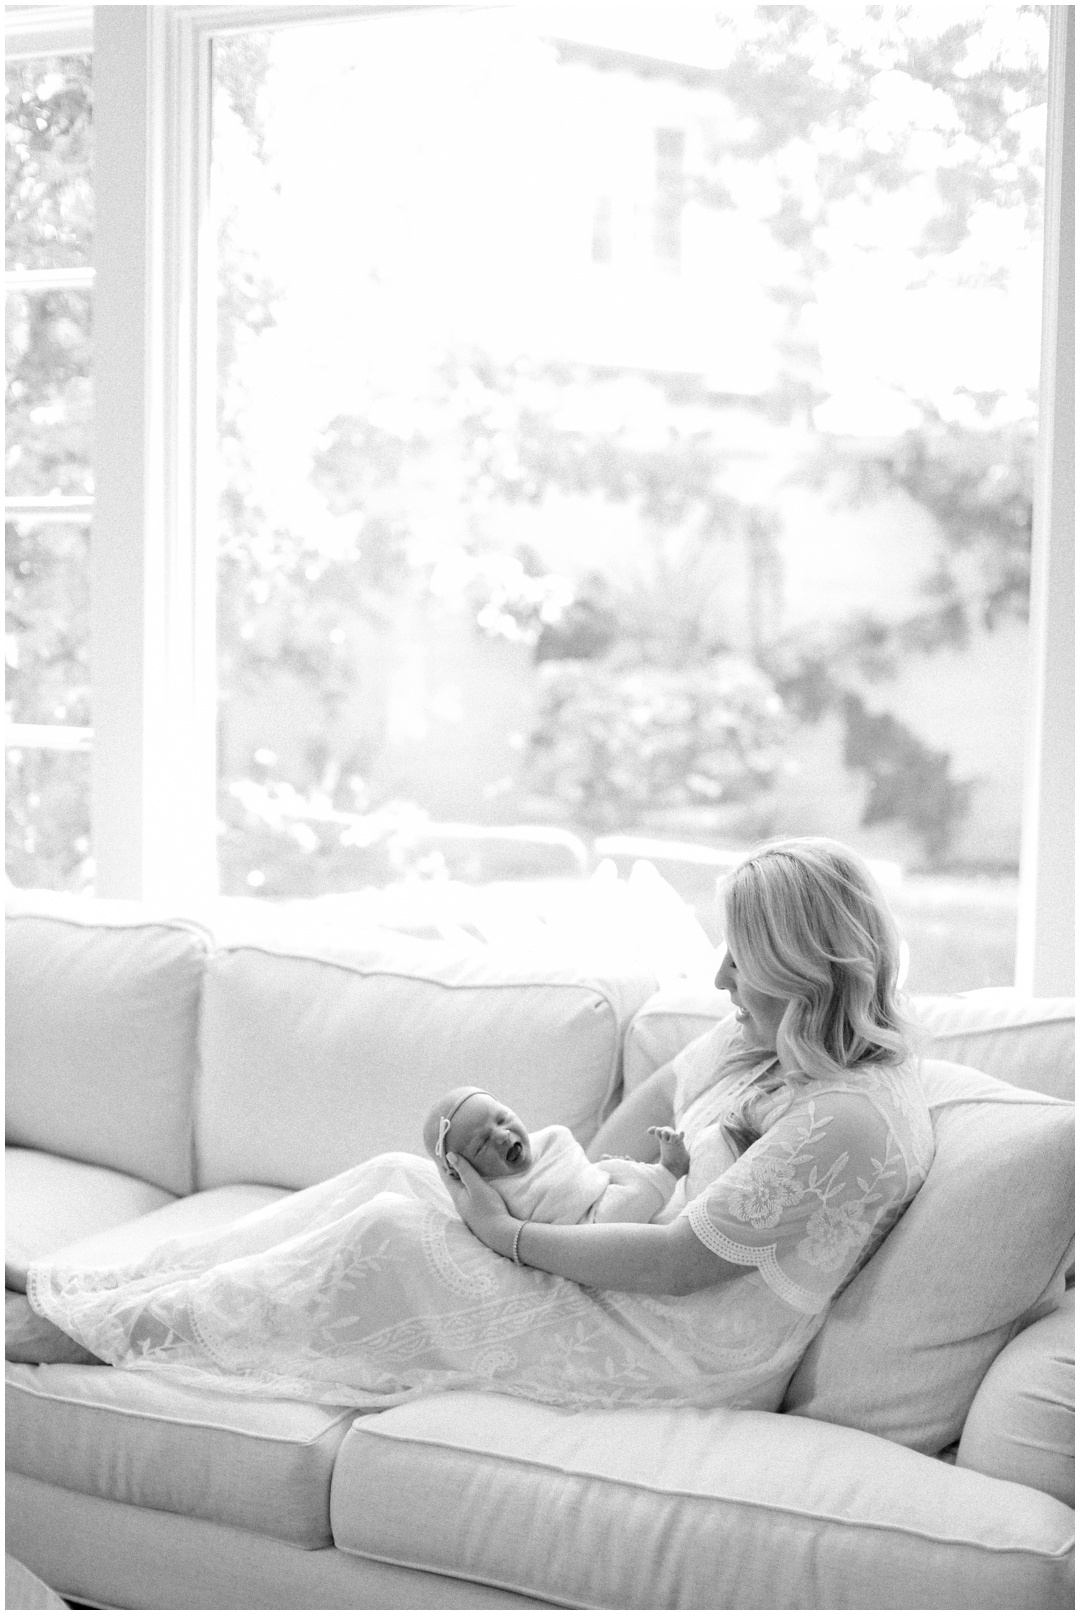 Newport_Beach_Newborn_Light_Airy_Natural_Photographer_Newport_Beach_Photographer_Orange_County_Family_Photographer_Cori_Kleckner_Photography_Newport_Beach_Photographer_newborn_kole_calhoun56_kole_calhoun_Jennifer_Calhoun_Knox_Calhoun_3794.jpg